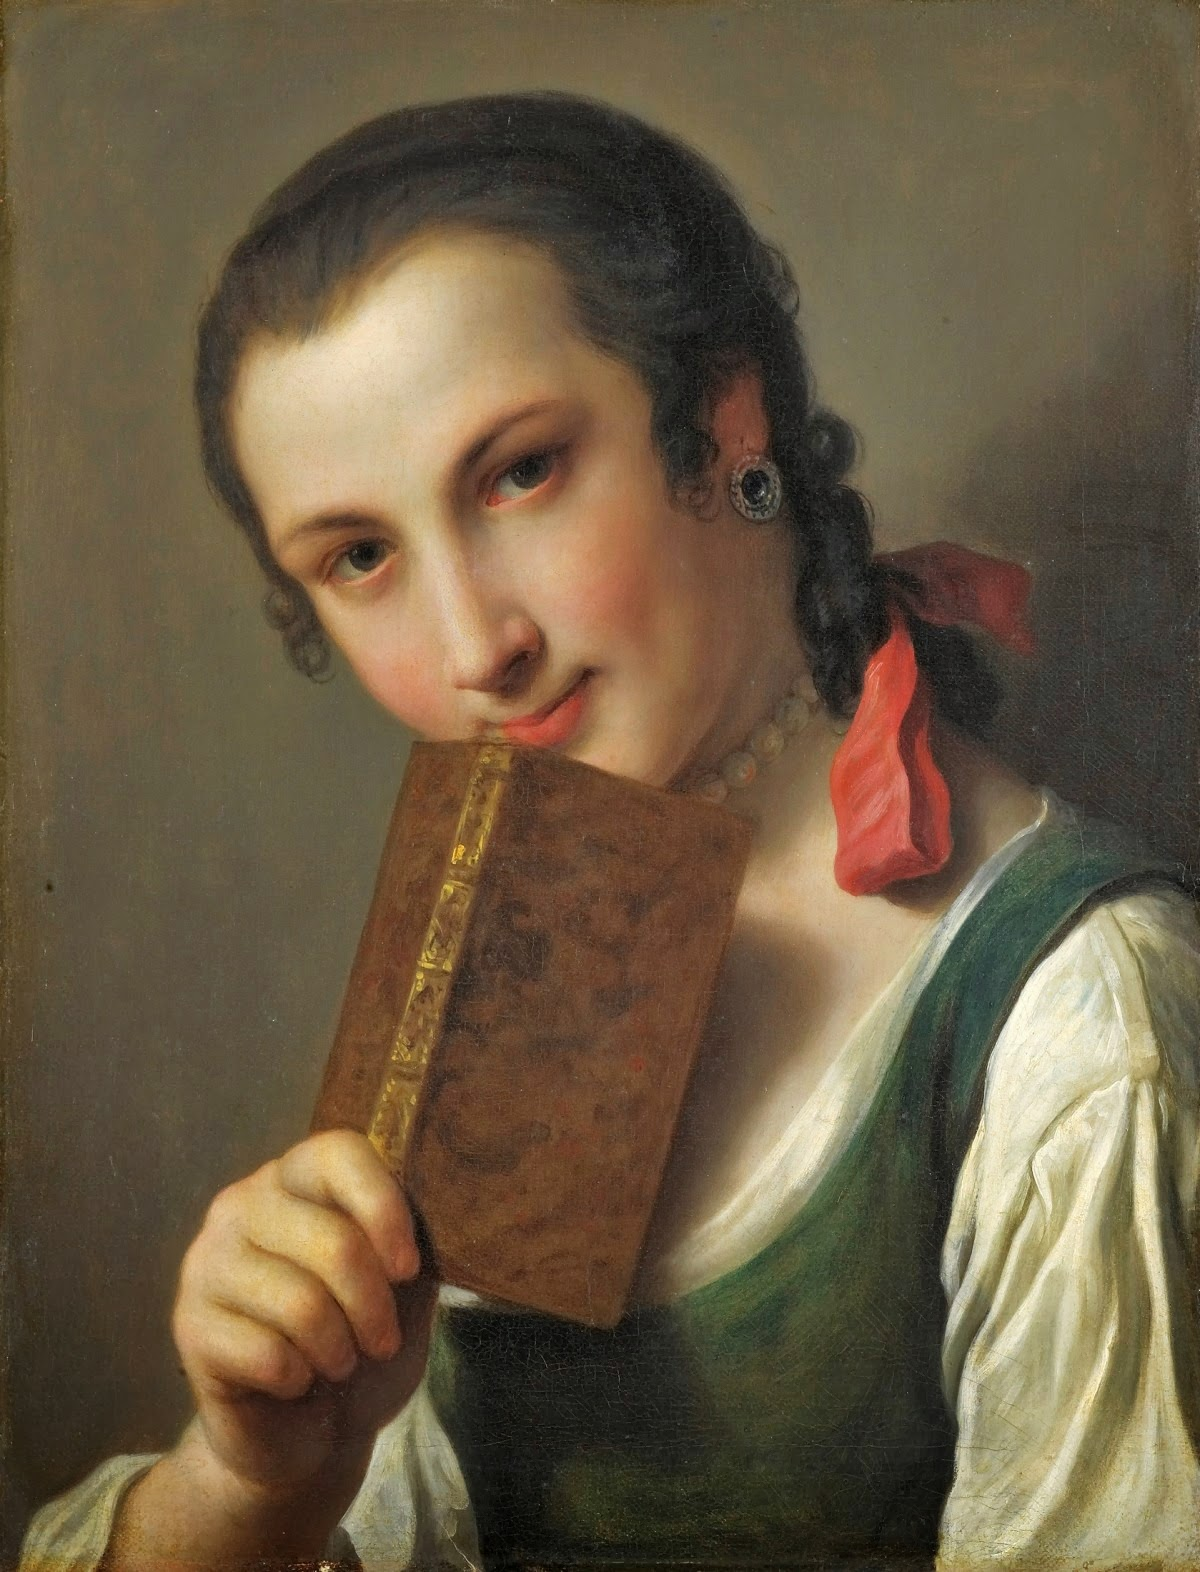 http://3.bp.blogspot.com/-wYvfFyUT5Gg/UkGrGg0xc2I/AAAAAAABjEI/ZhY9M0srzWU/s1600/Pietro+Antonio+Rotari+(Italian+artist,+1707-1762)+Young+Woman+with+a+Book+1762.jpg